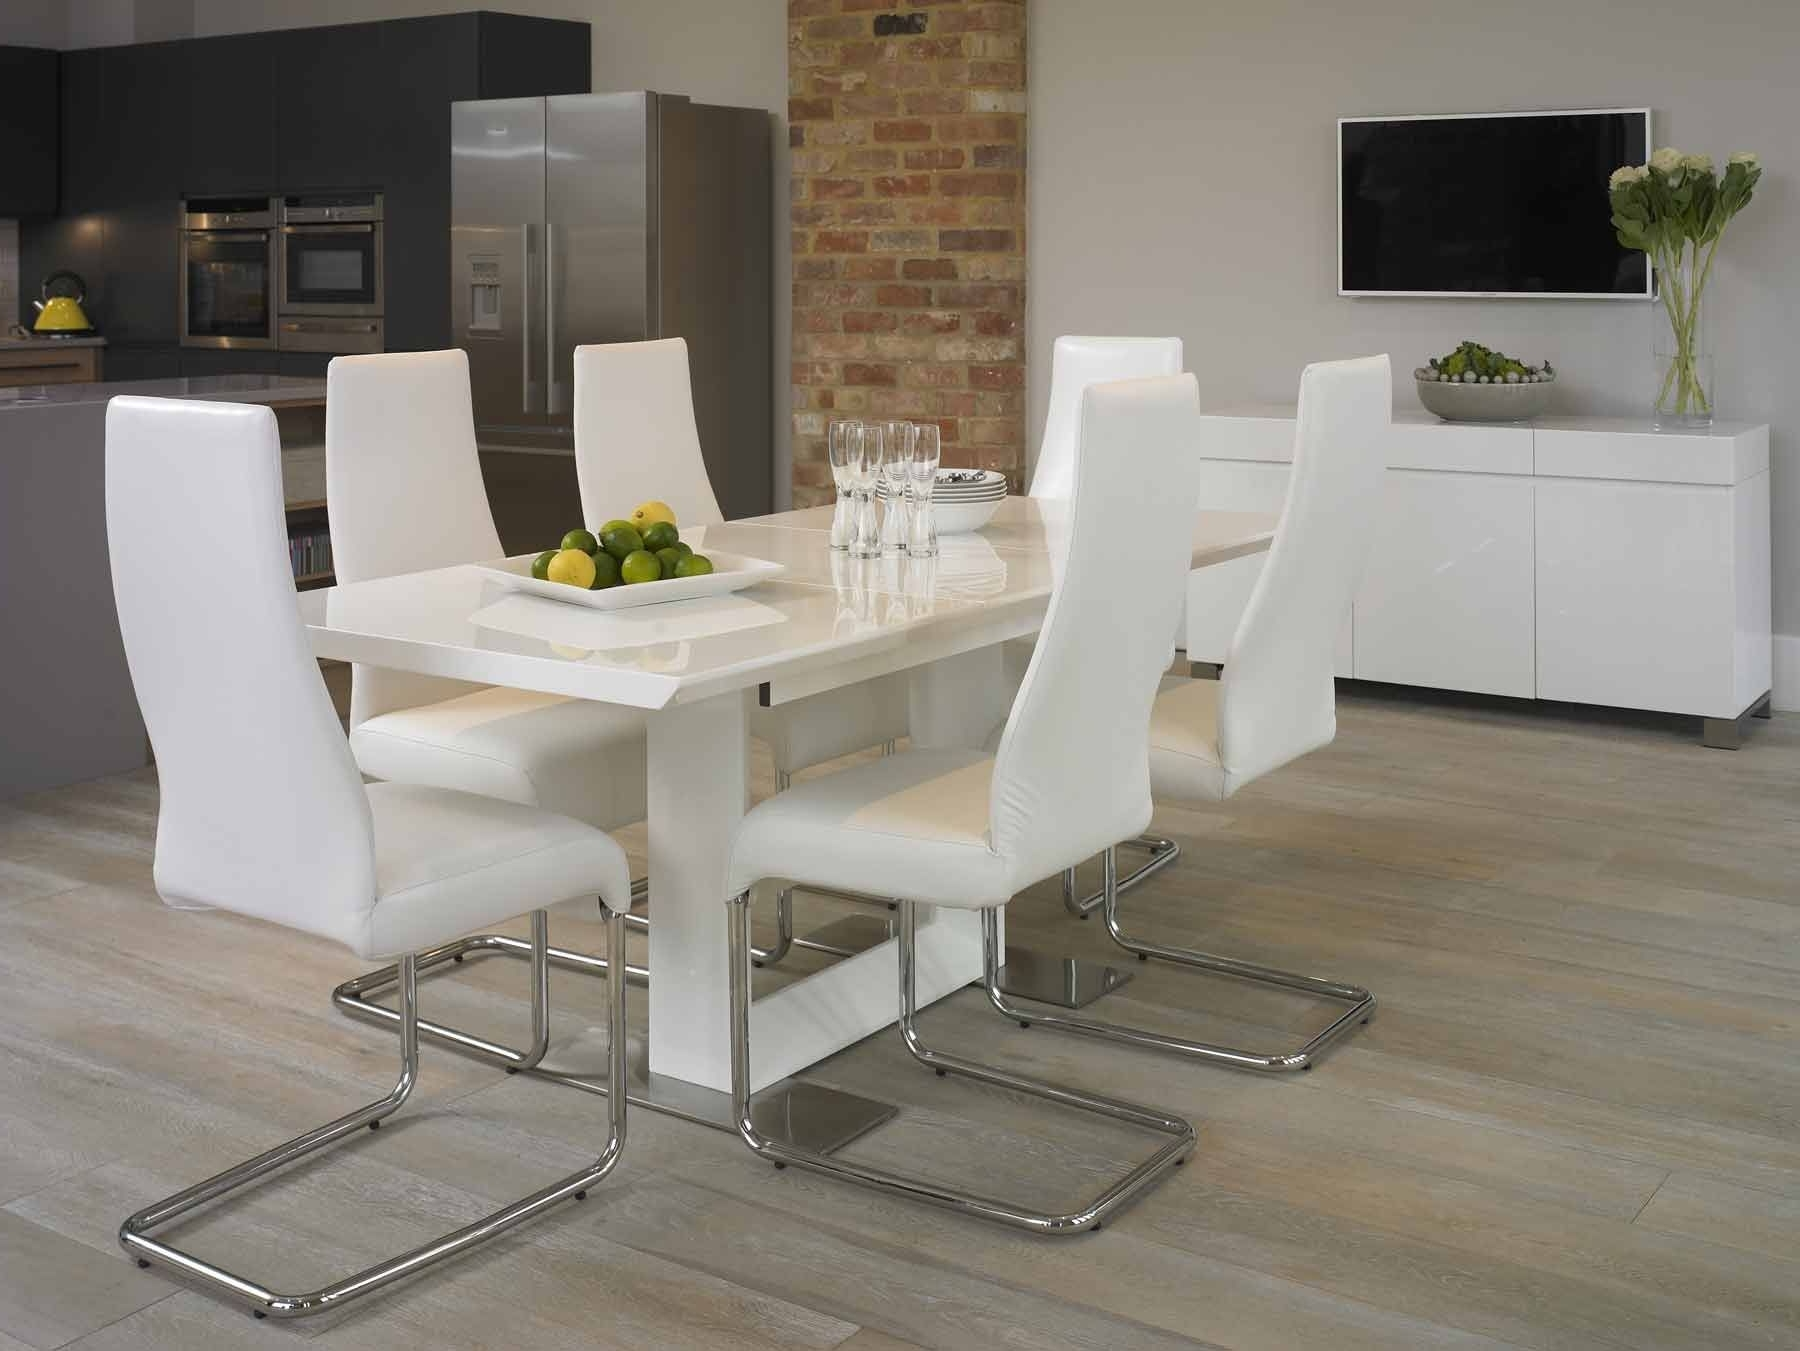 White Gloss Dining Tables Sets With Regard To 2018 White Gloss Dining Table Harlequin White High Gloss X (View 24 of 25)